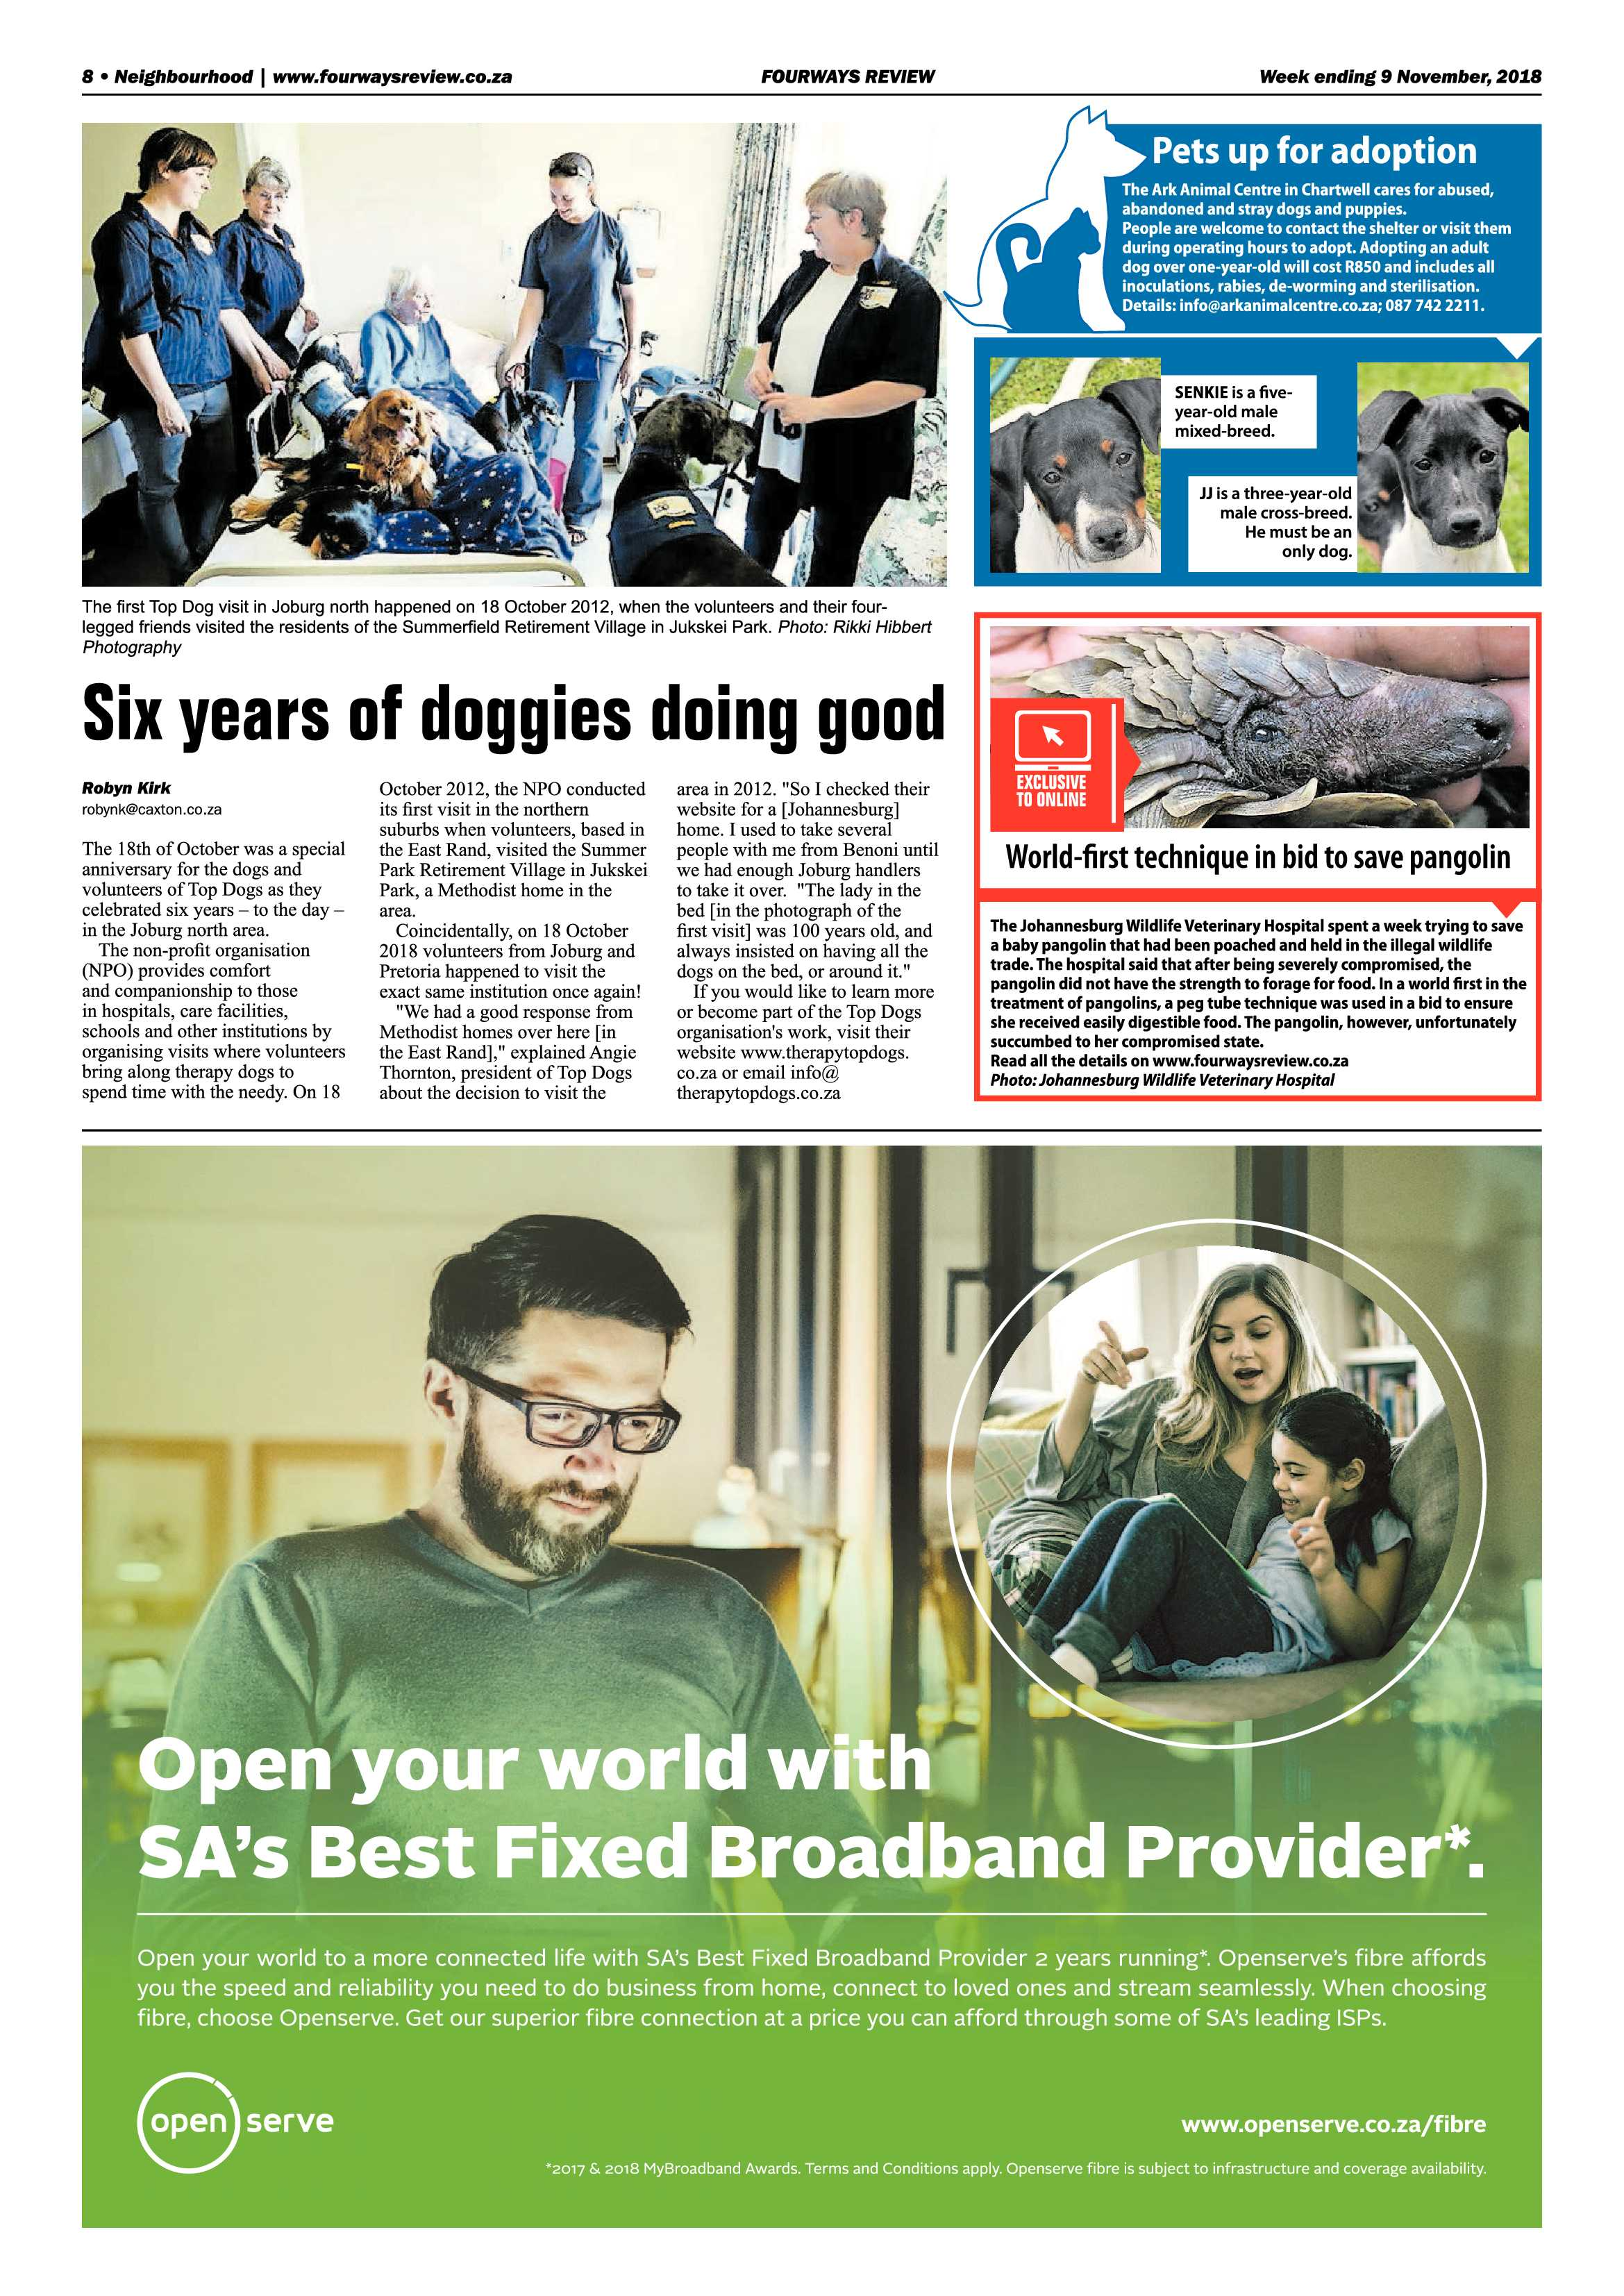 fourways-review-9-november-2018-epapers-page-8